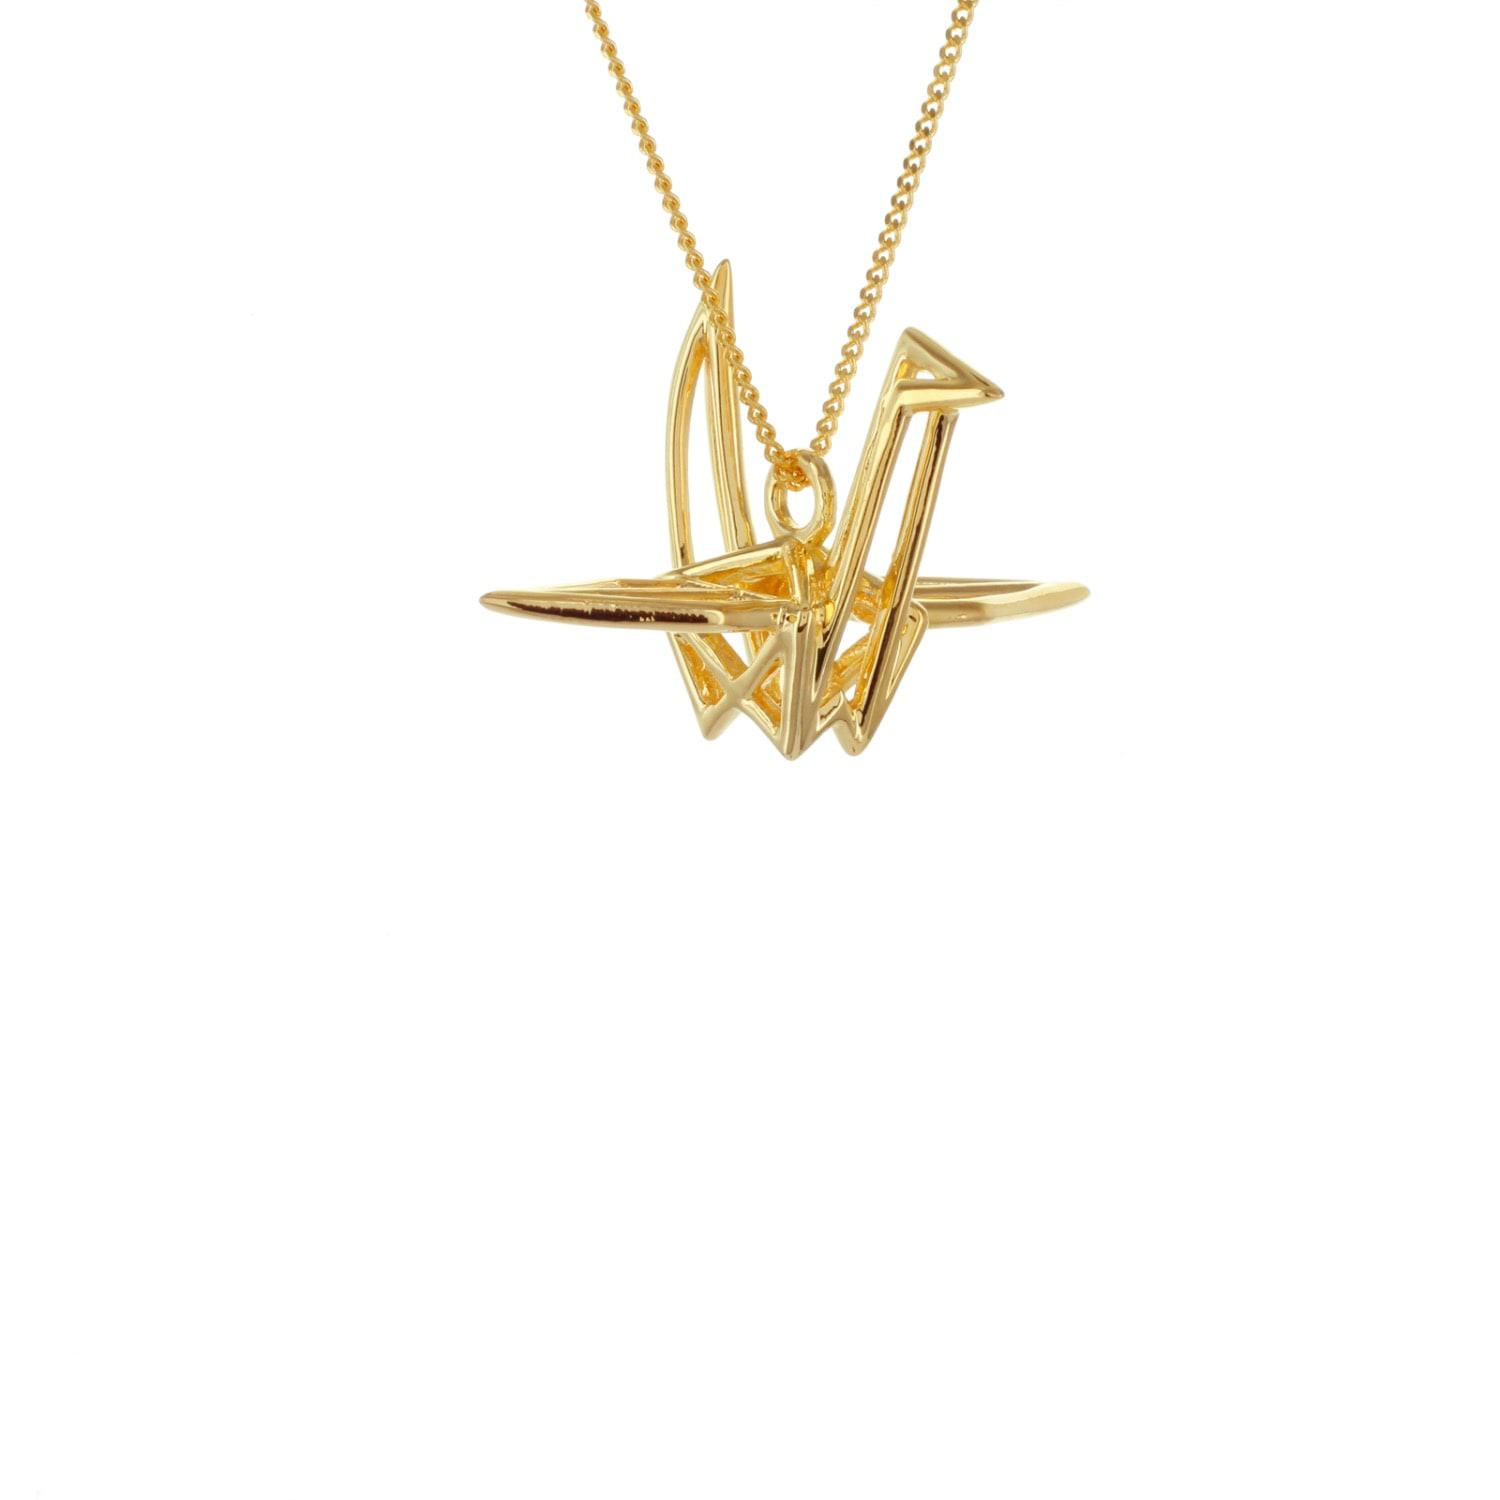 Origami Jewellery Sterling Silver & Gold Frame Crane Origami Necklace in Metallic - Save 28%